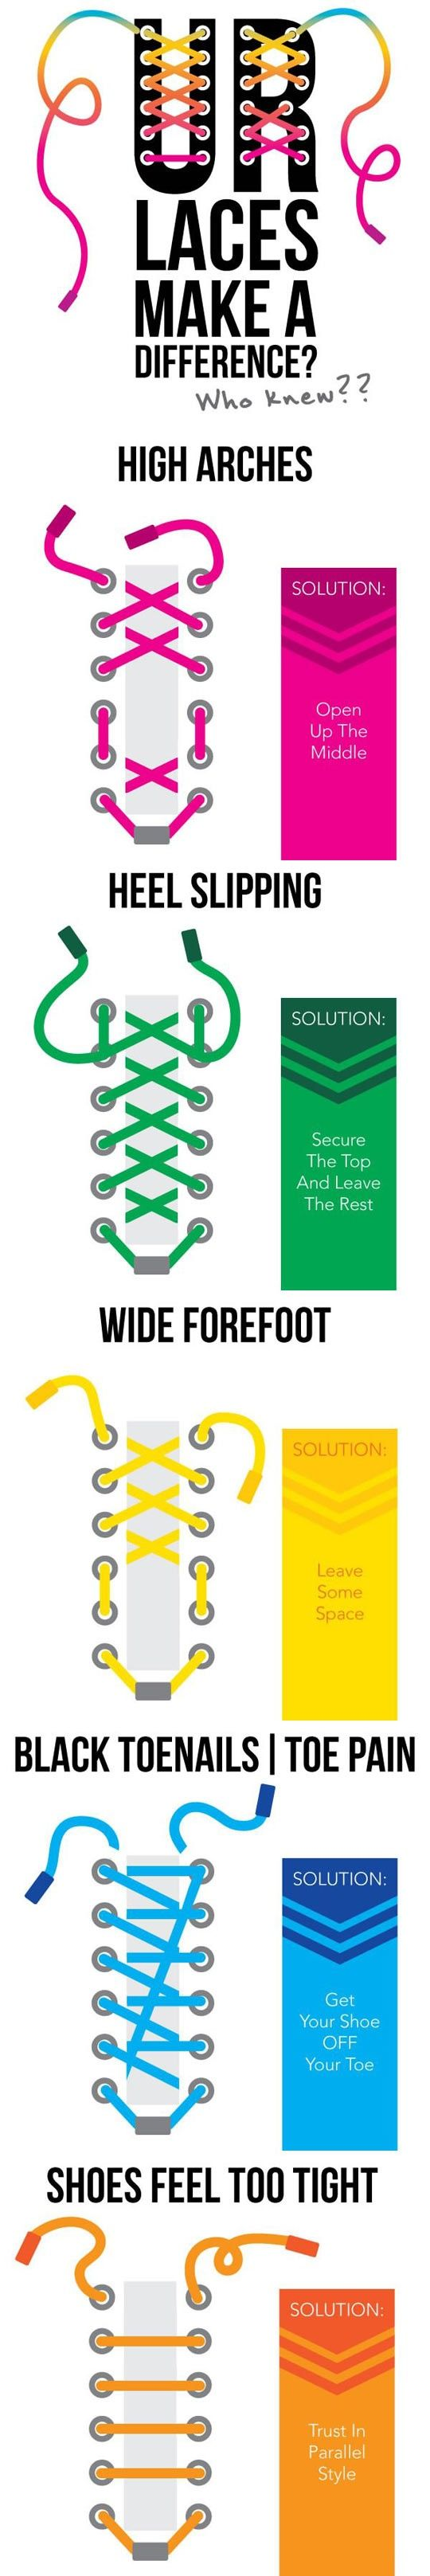 How To Lace Shoes For Proper Fit - Imgur